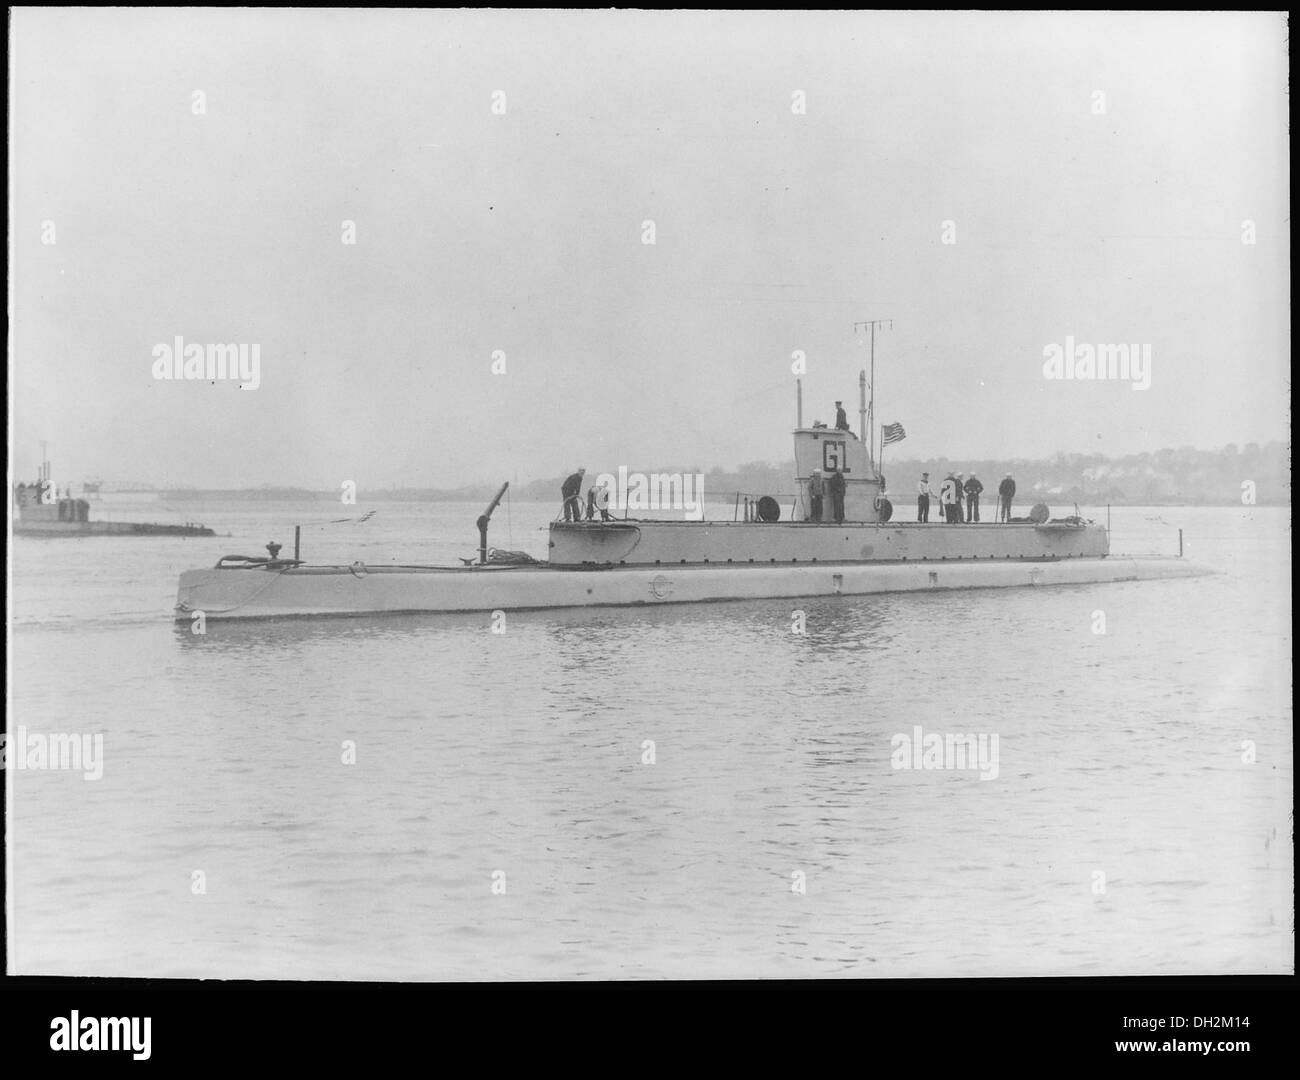 Seal (SS19 1-2), renamed G1. Port bow, crew on deck, 1912 513028 - Stock Image